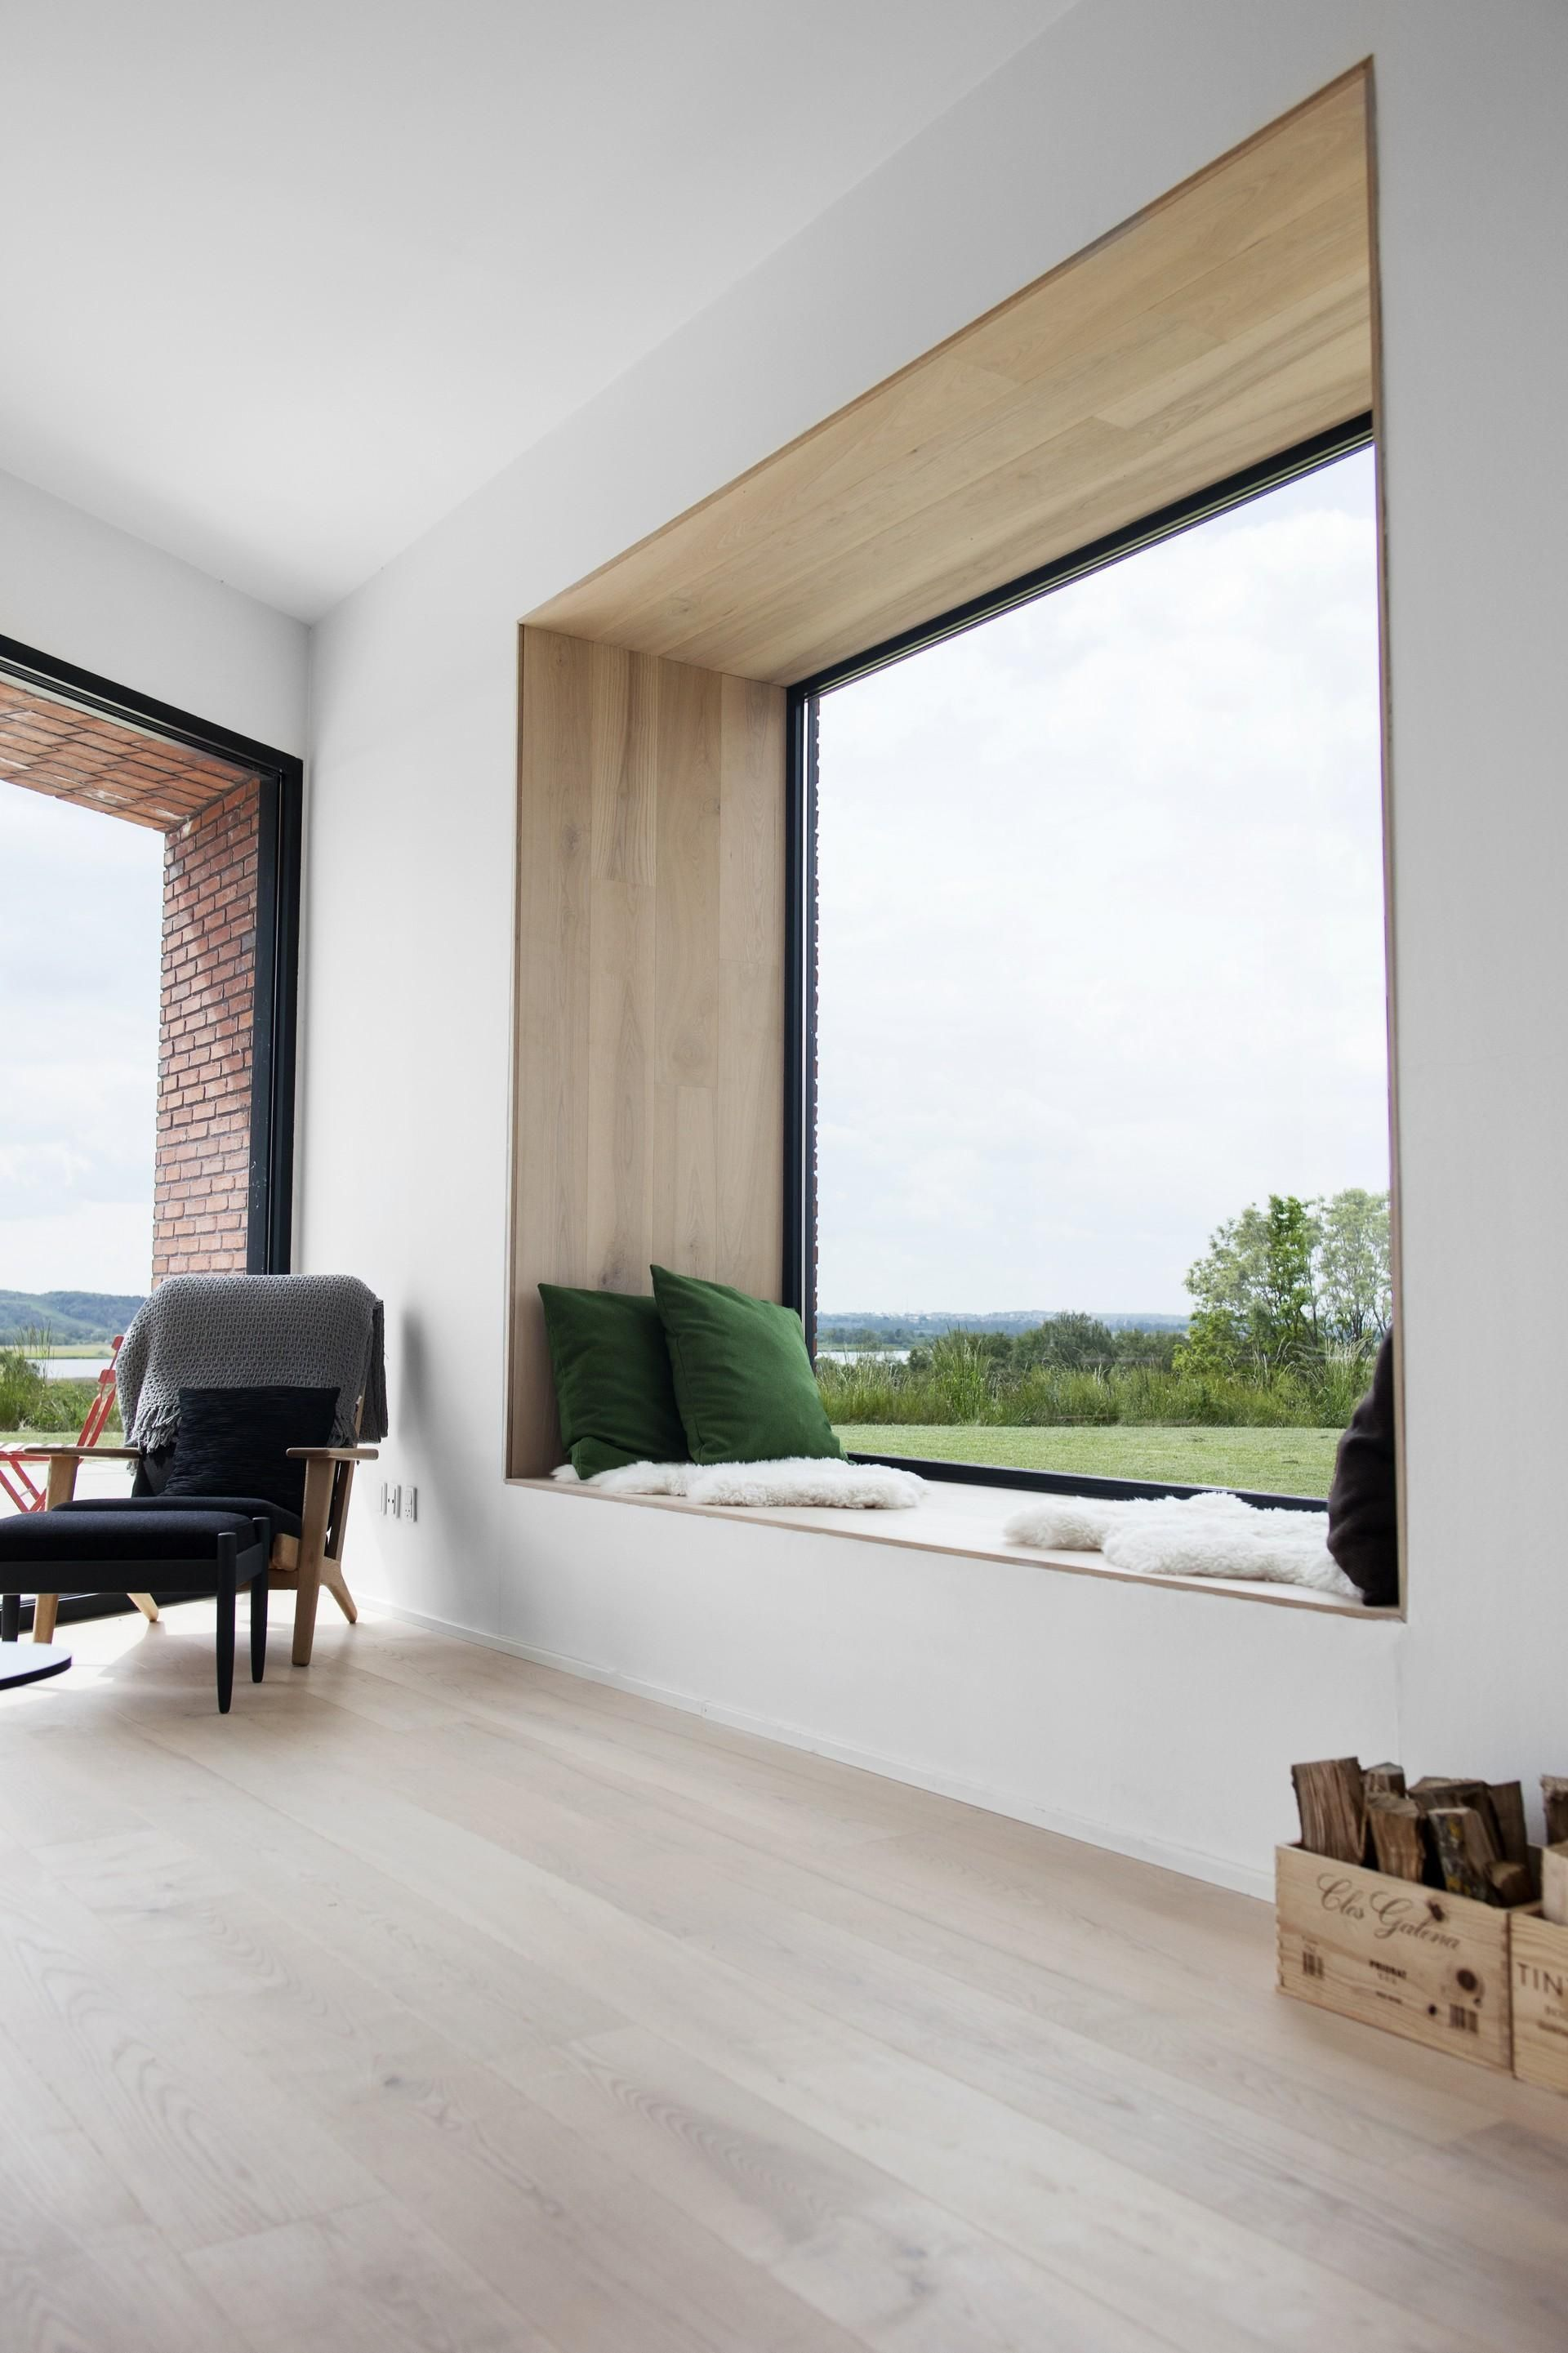 I have this thing for big windows (Hege in France) Lately Iu2019ve noticed a lot of big windows on ... - #France #iu2019ve #lately #noticed #thing #windows - #OakHardwoodFlooring